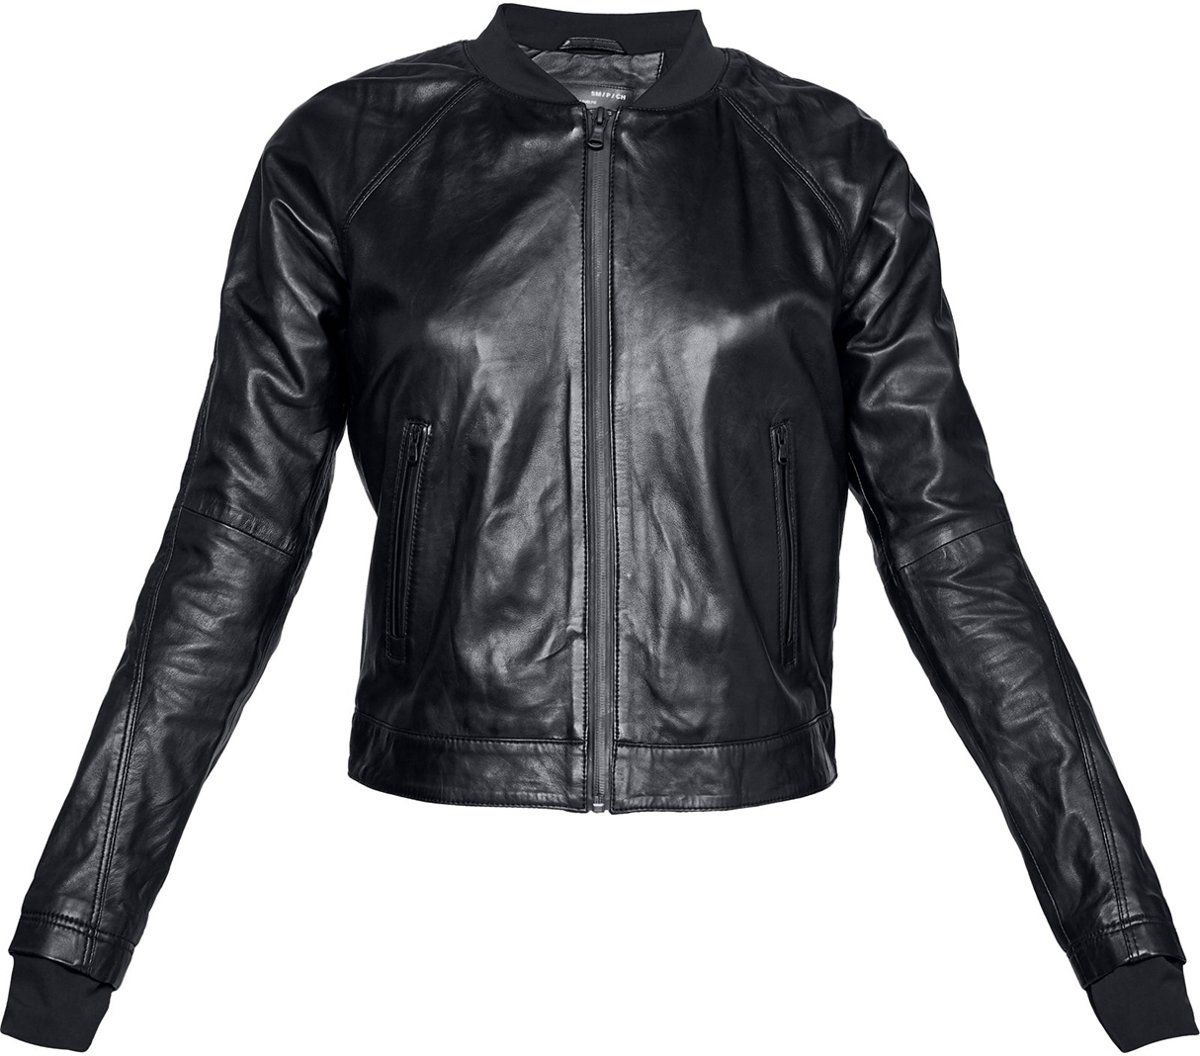 Under Armour - Misty Leather Jacket-BLK - Dames - maat L